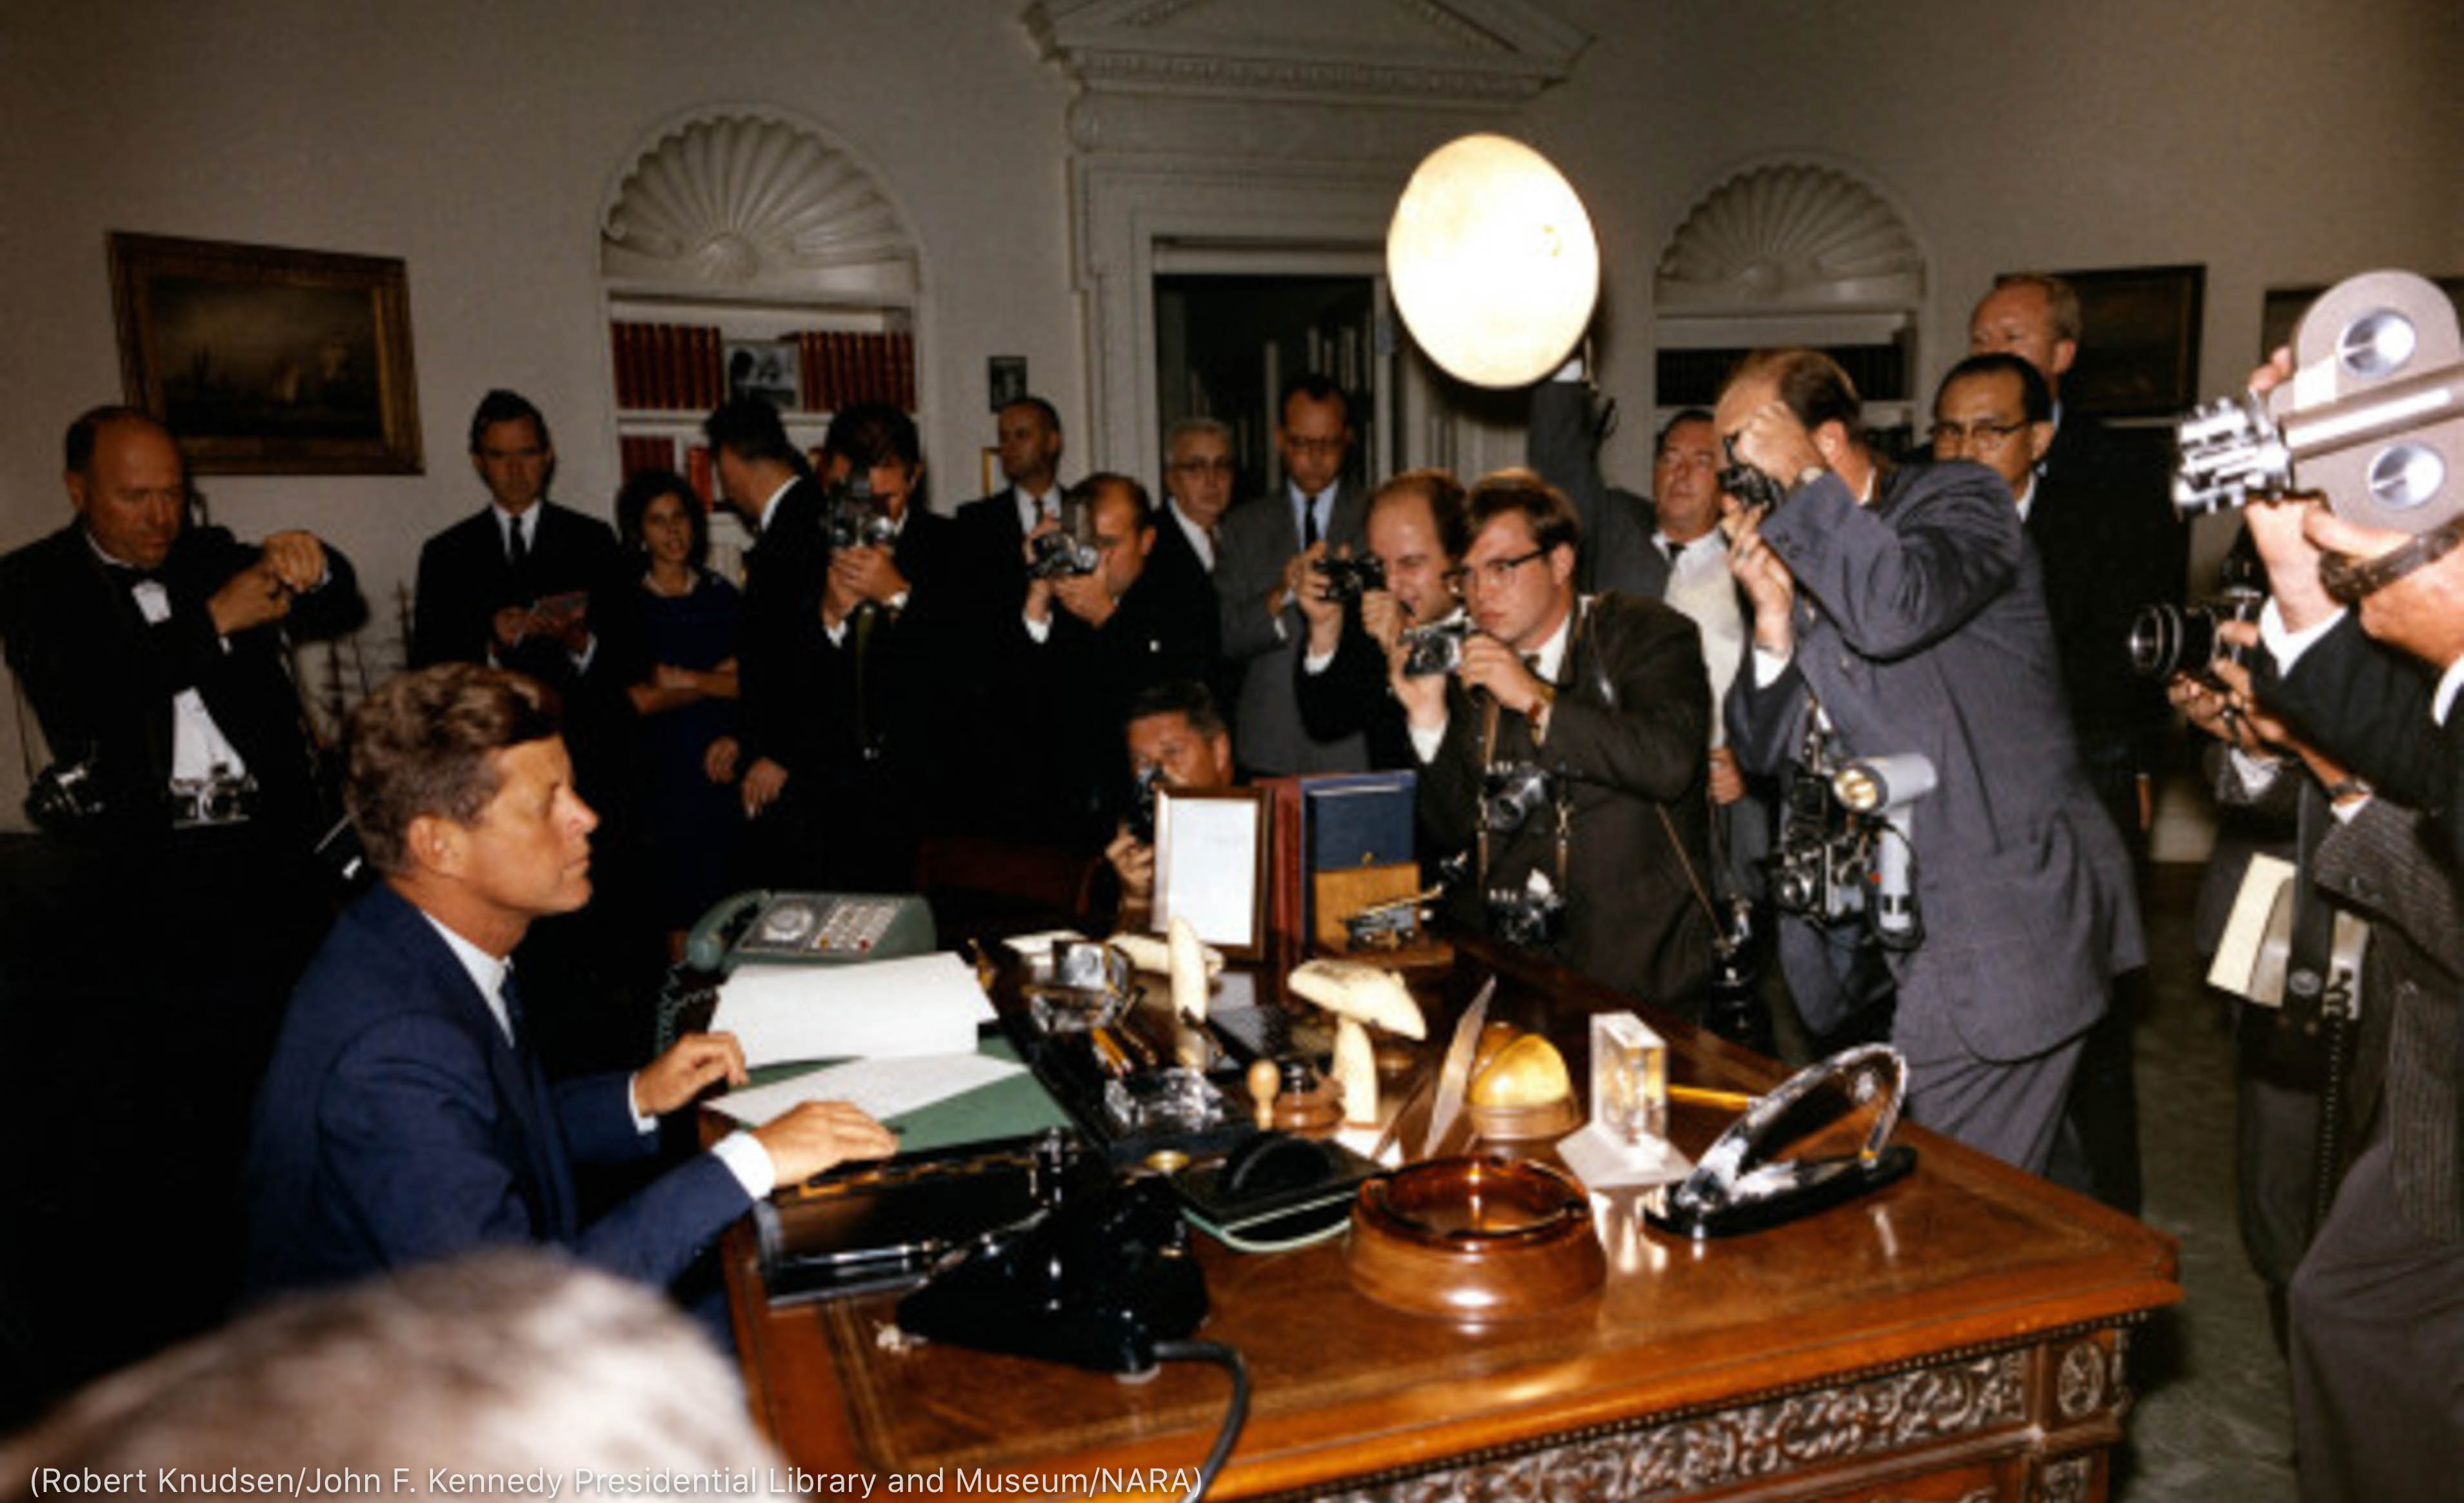 People holding cameras surrounding President Kennedy's desk (Robert Knudsen/John F. Kennedy Presidential Library and Museum/NARA)